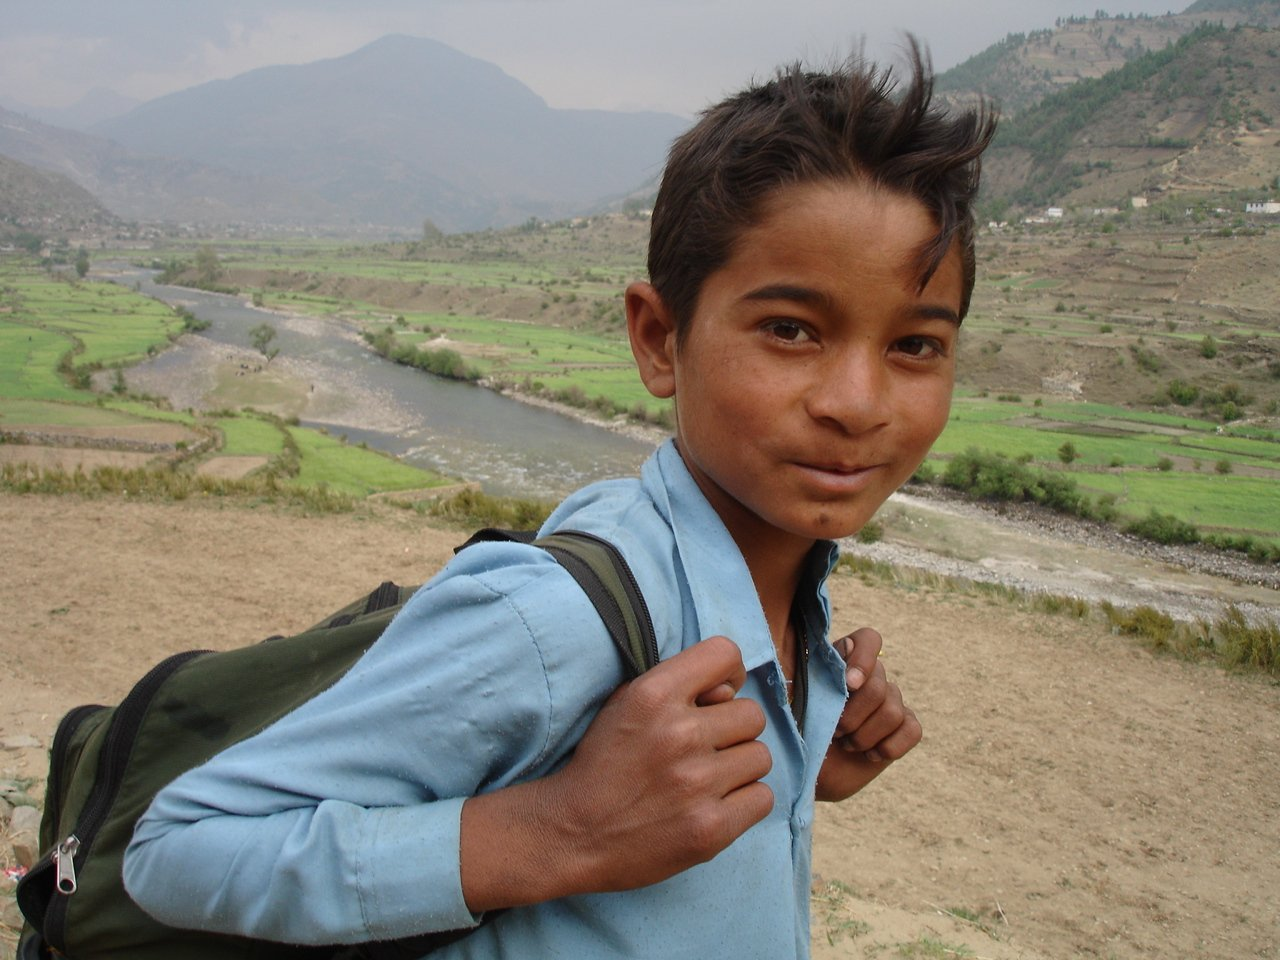 A young boy walks to school in Jumla, a remote mountain district in western Nepal. Access to education in Nepal's remote mountainous regions remains a challenge